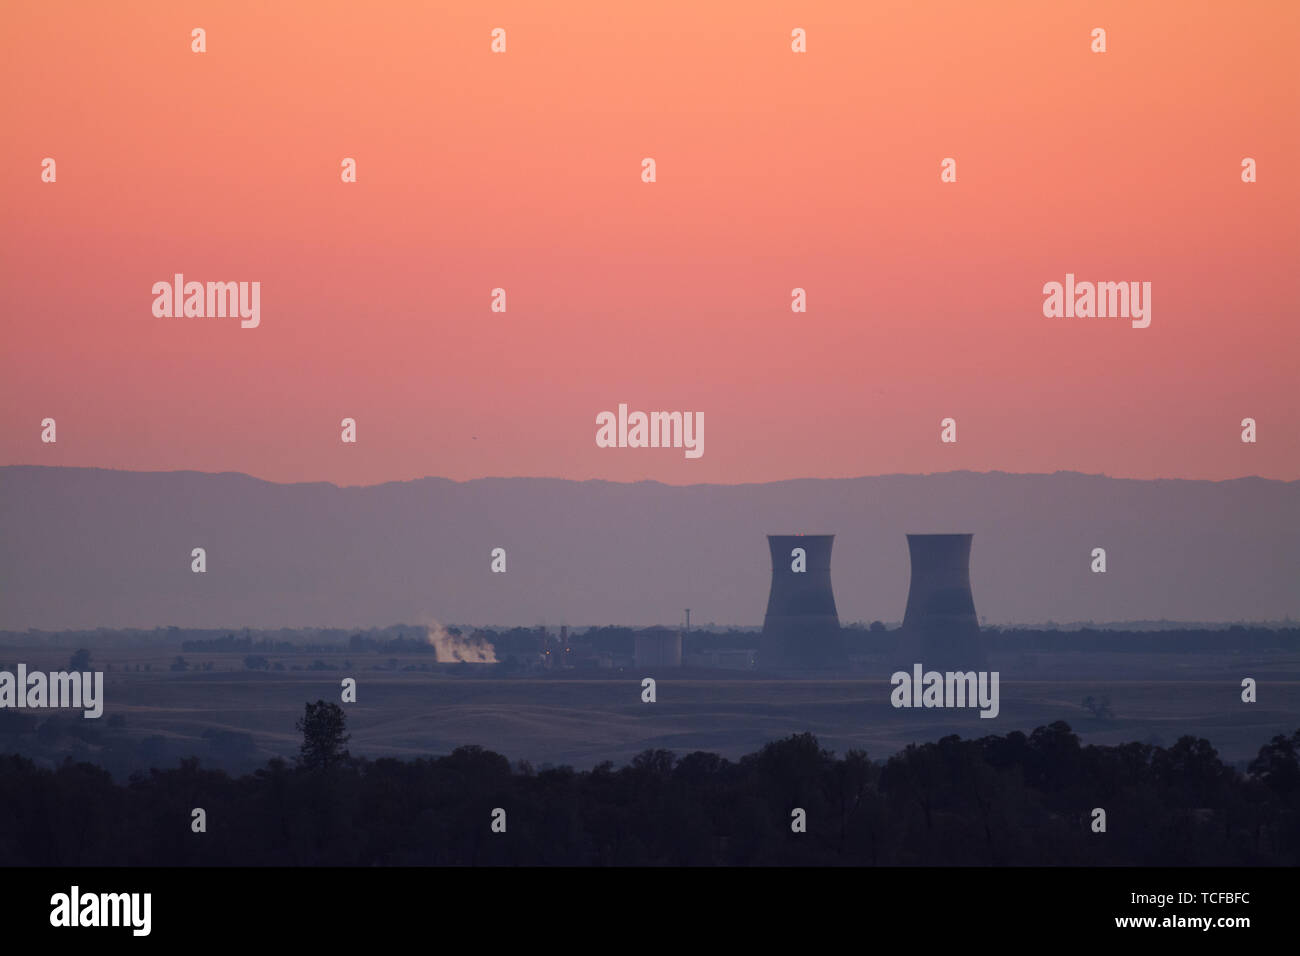 The shut down cooling towers of the rancho seco nuclear generation station, Sacramento california. - Stock Image